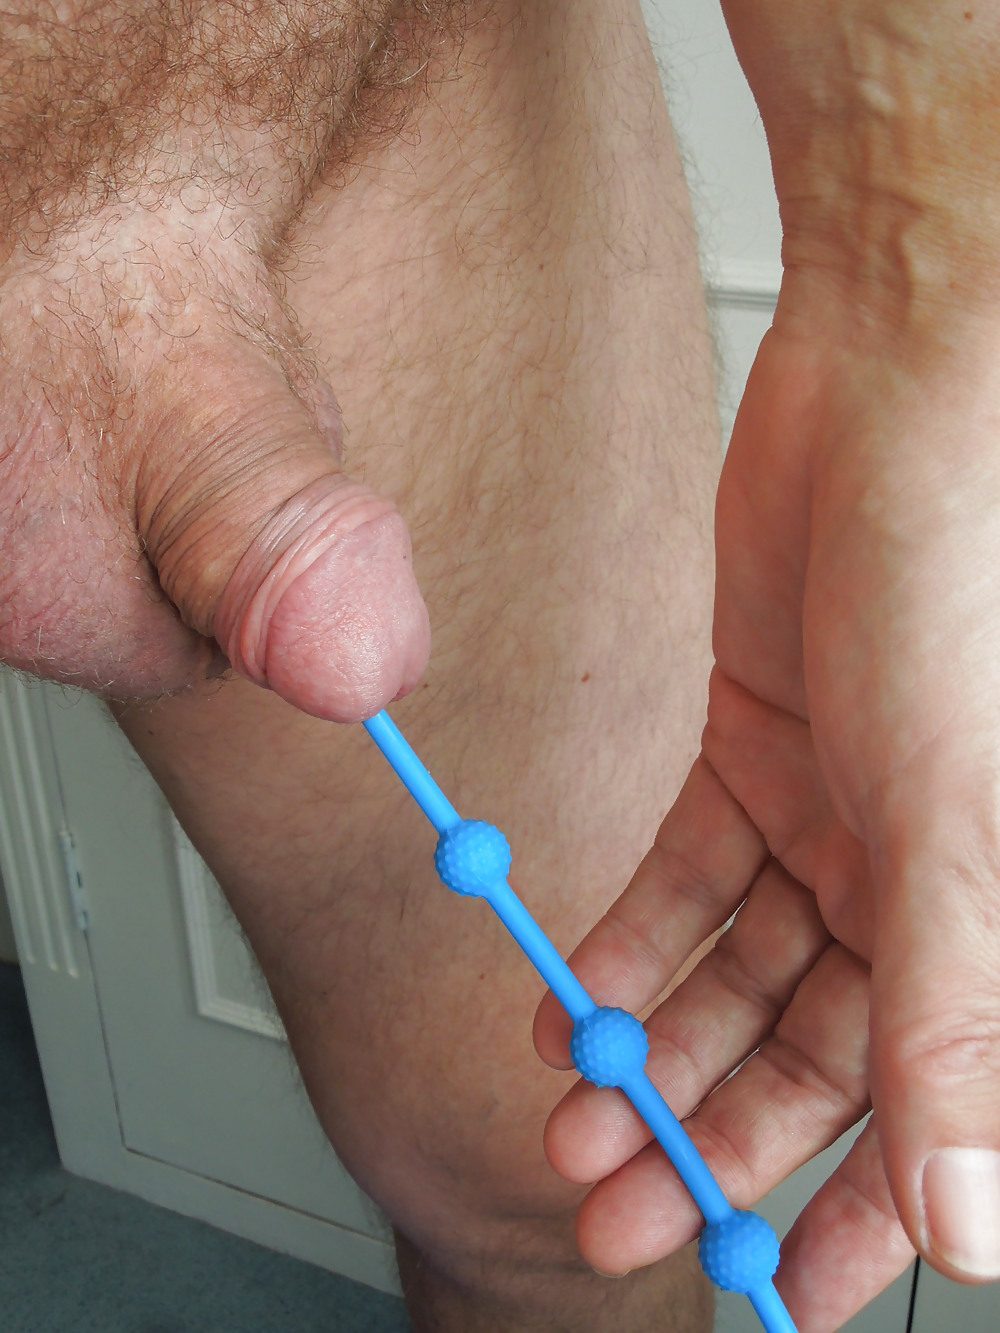 Urethral Play With Anal Beads - 11 Pics - Xhamstercom-7091